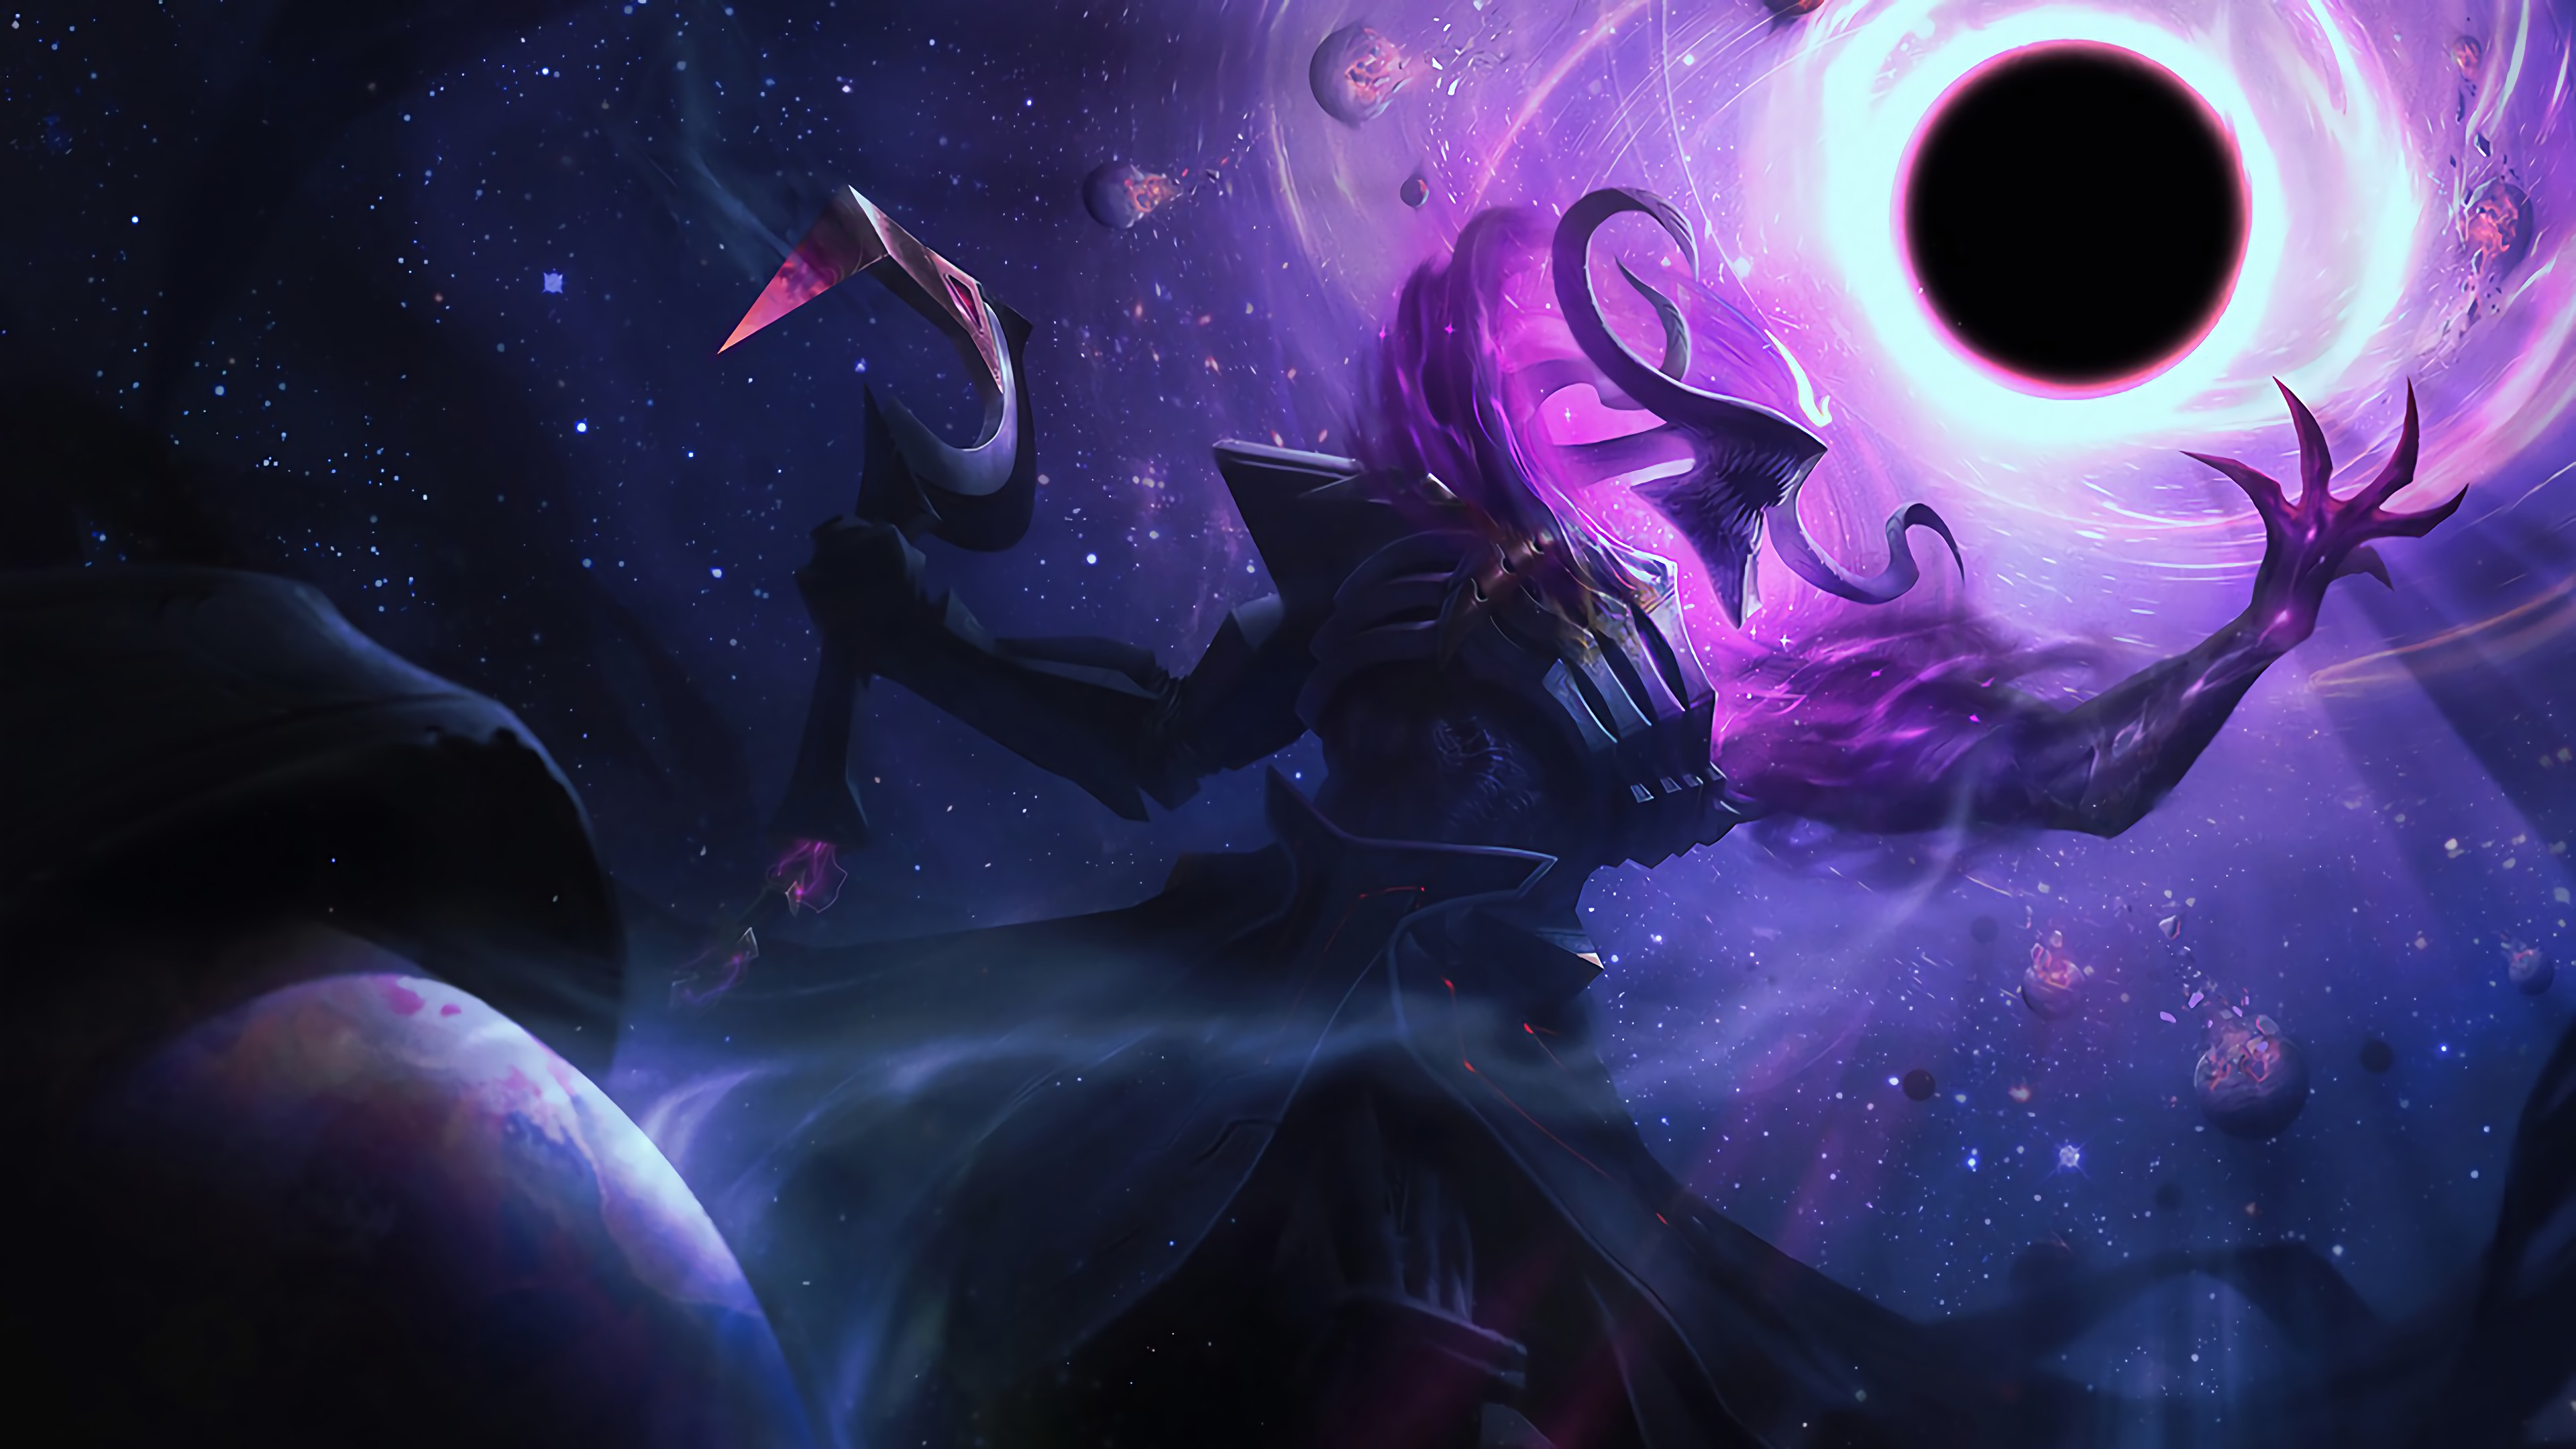 Wallpaper Dark Star Thresh League of Legends